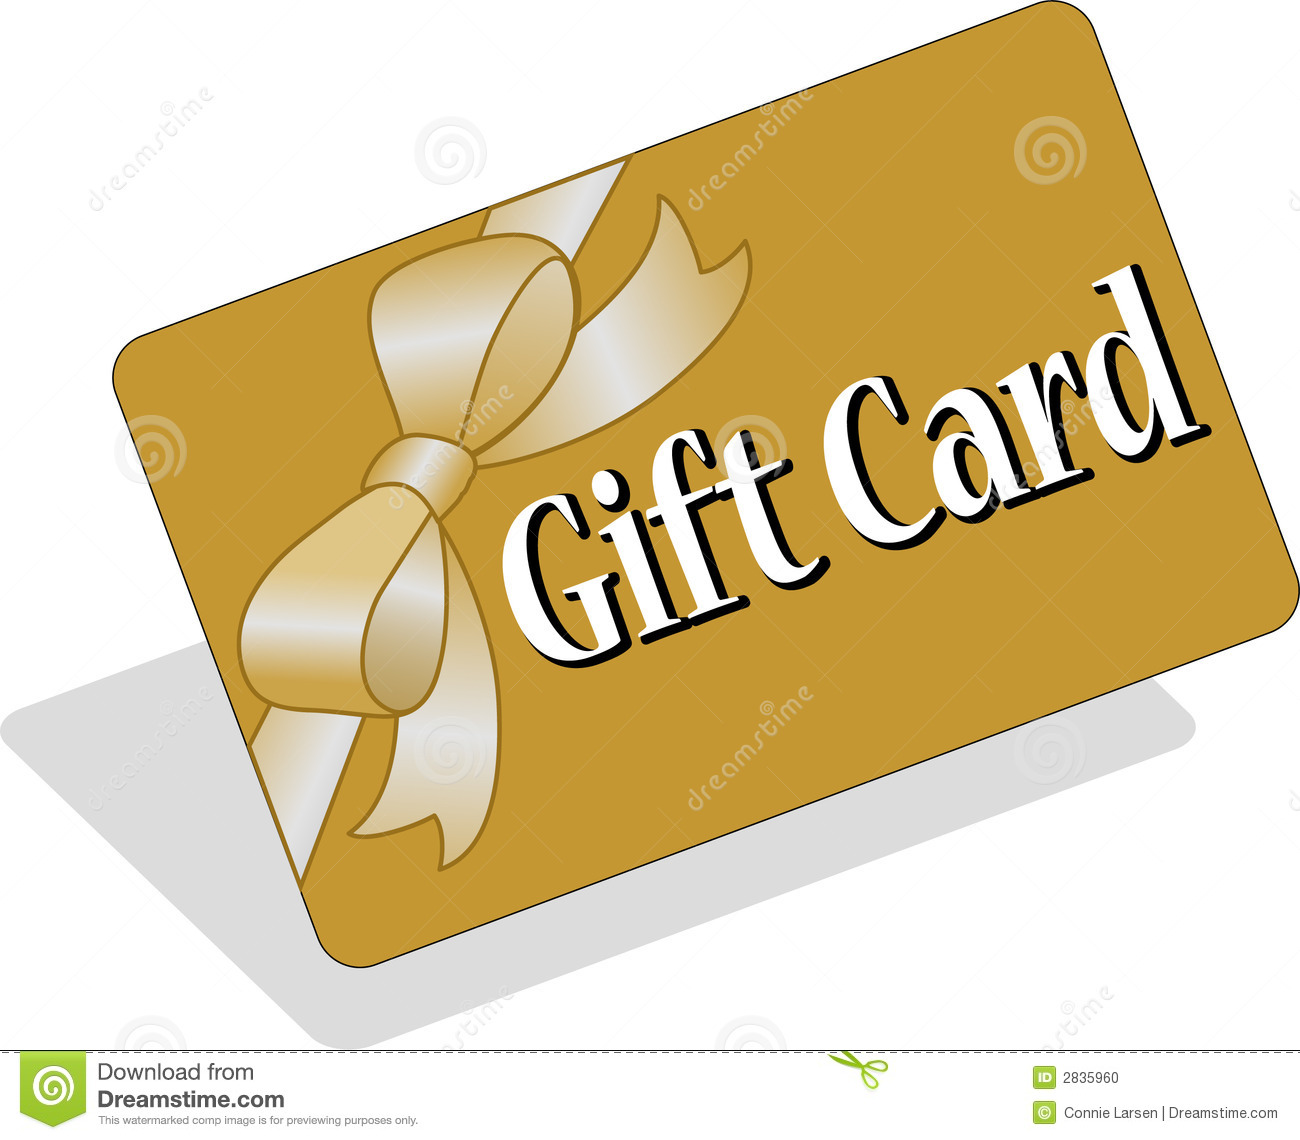 Gift card clipart free.